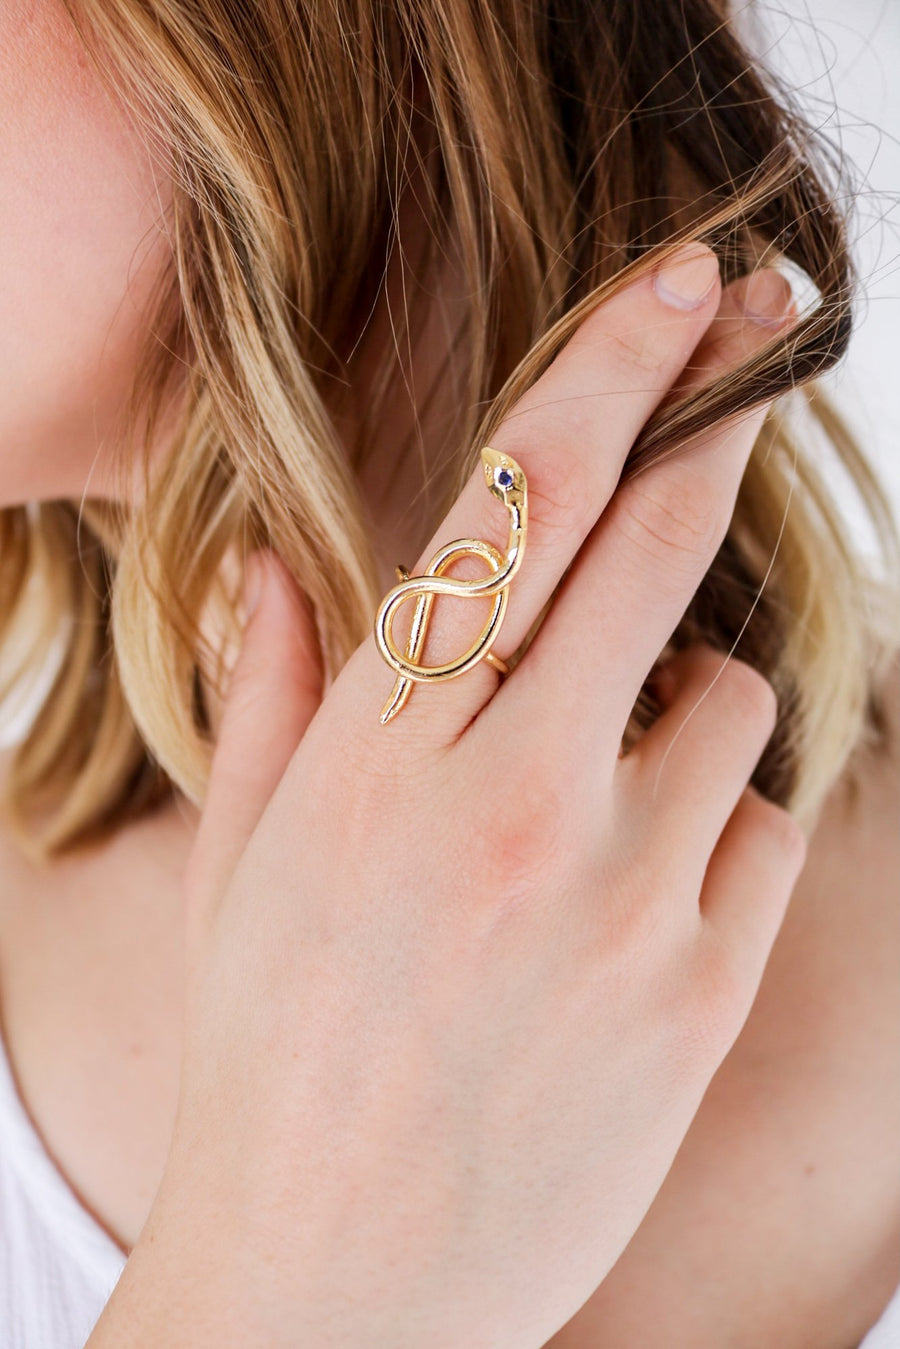 Coiled serpent snake ring on model. 14k yellow gold hand carved snake ring set with a birthstone in the head. Handmade by local jewelry designer, Nina Berenato, in Austin, Texas.